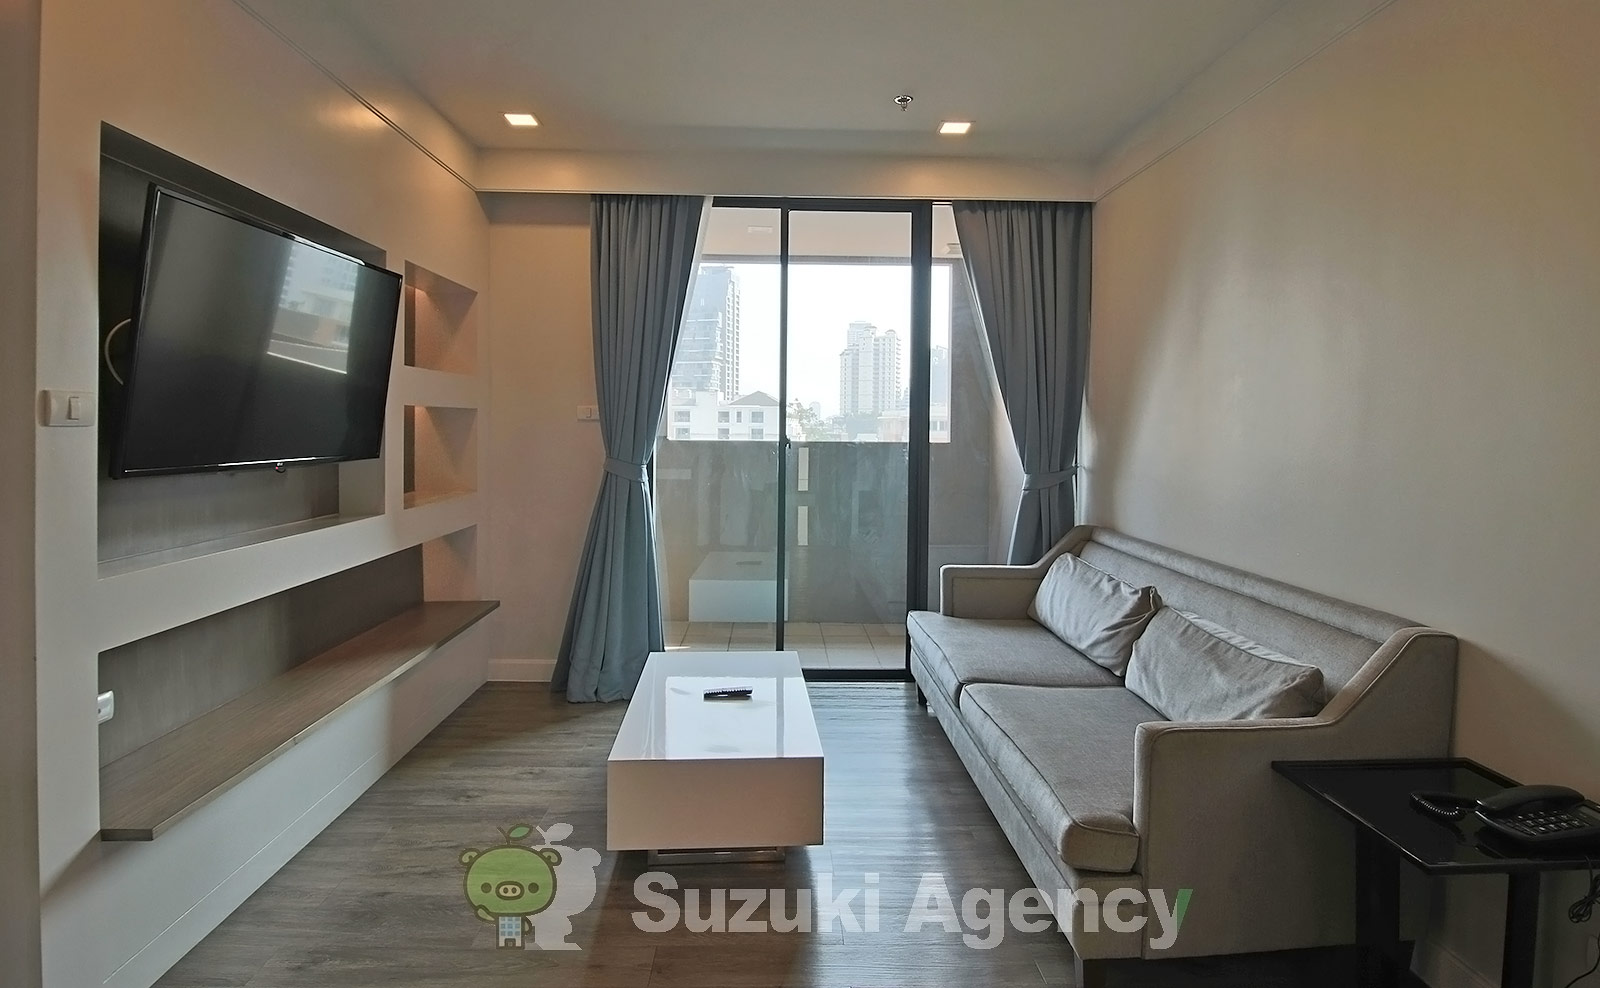 METROPOLE Residence (旧 Parc 39):1Bed Room Photos No.3